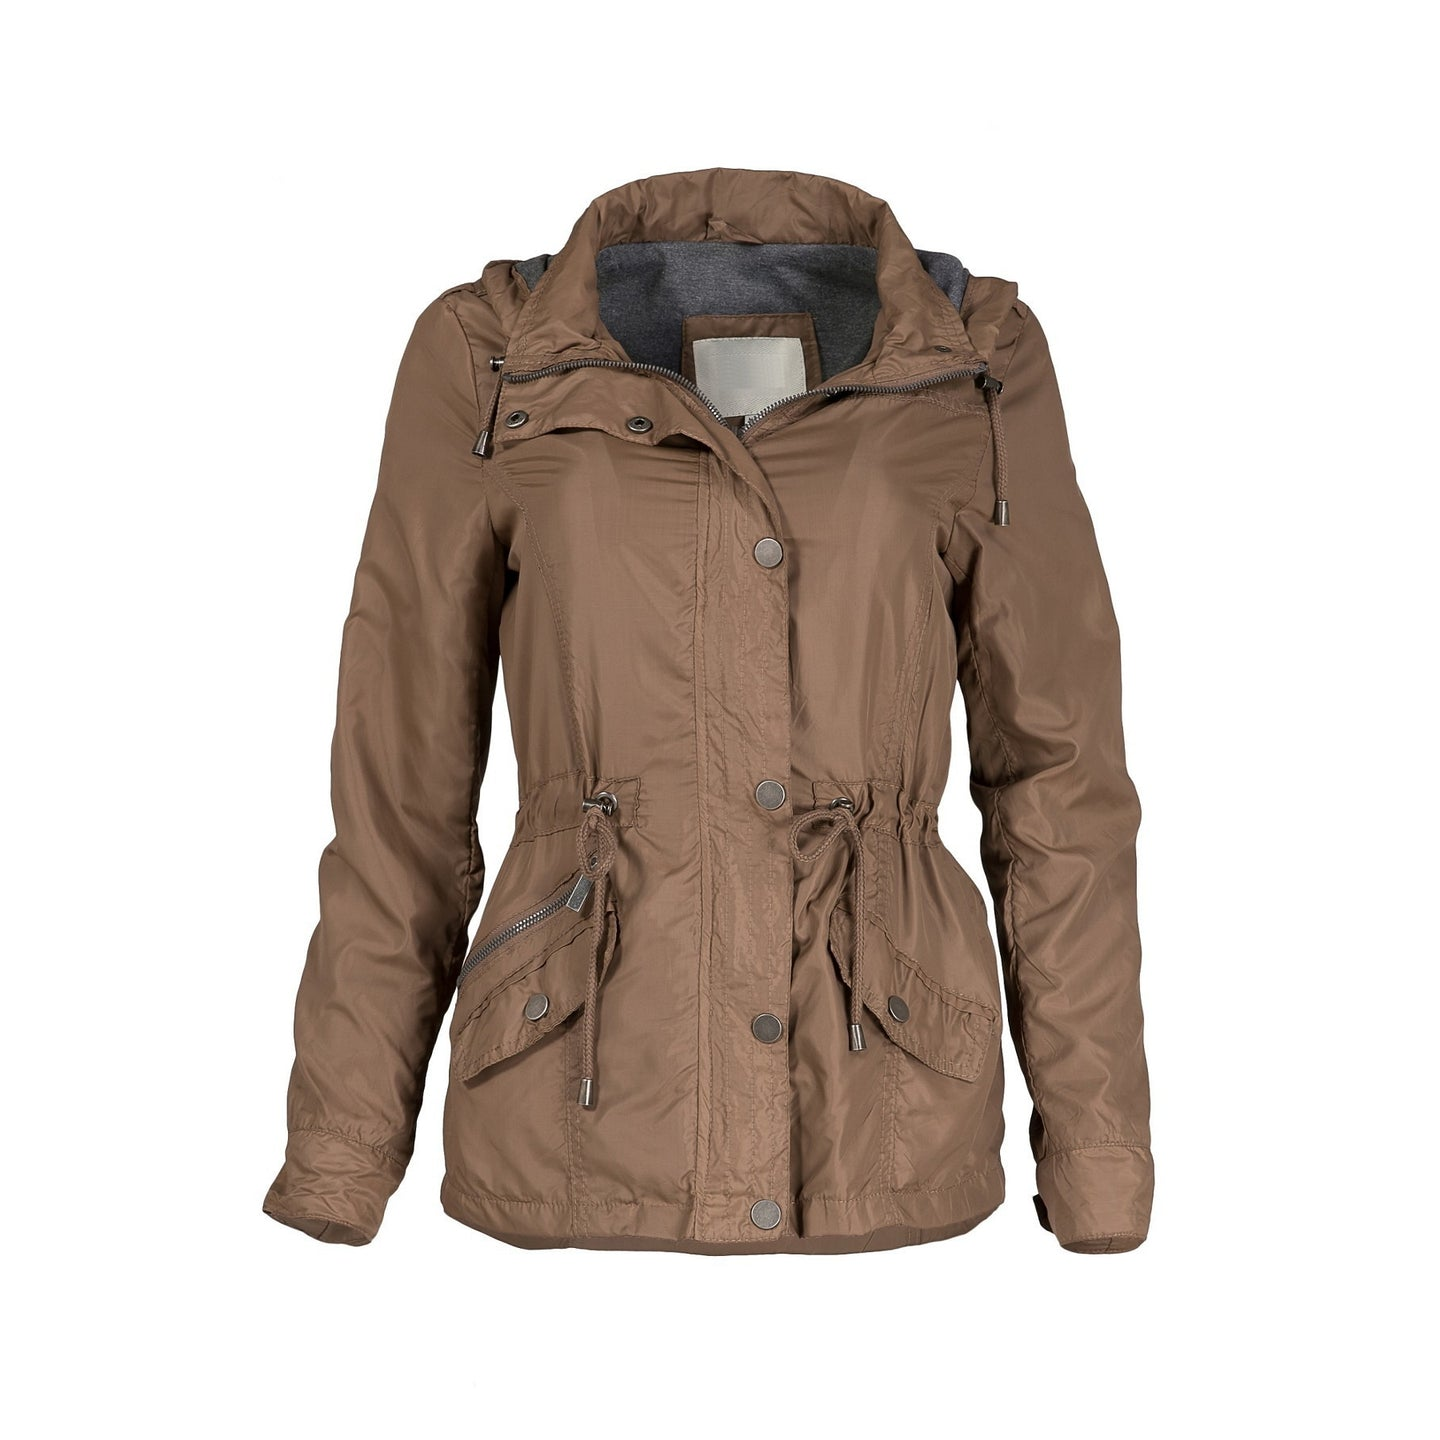 Carolina Girl Lined Windbreaker Jacket in Brown PLUS